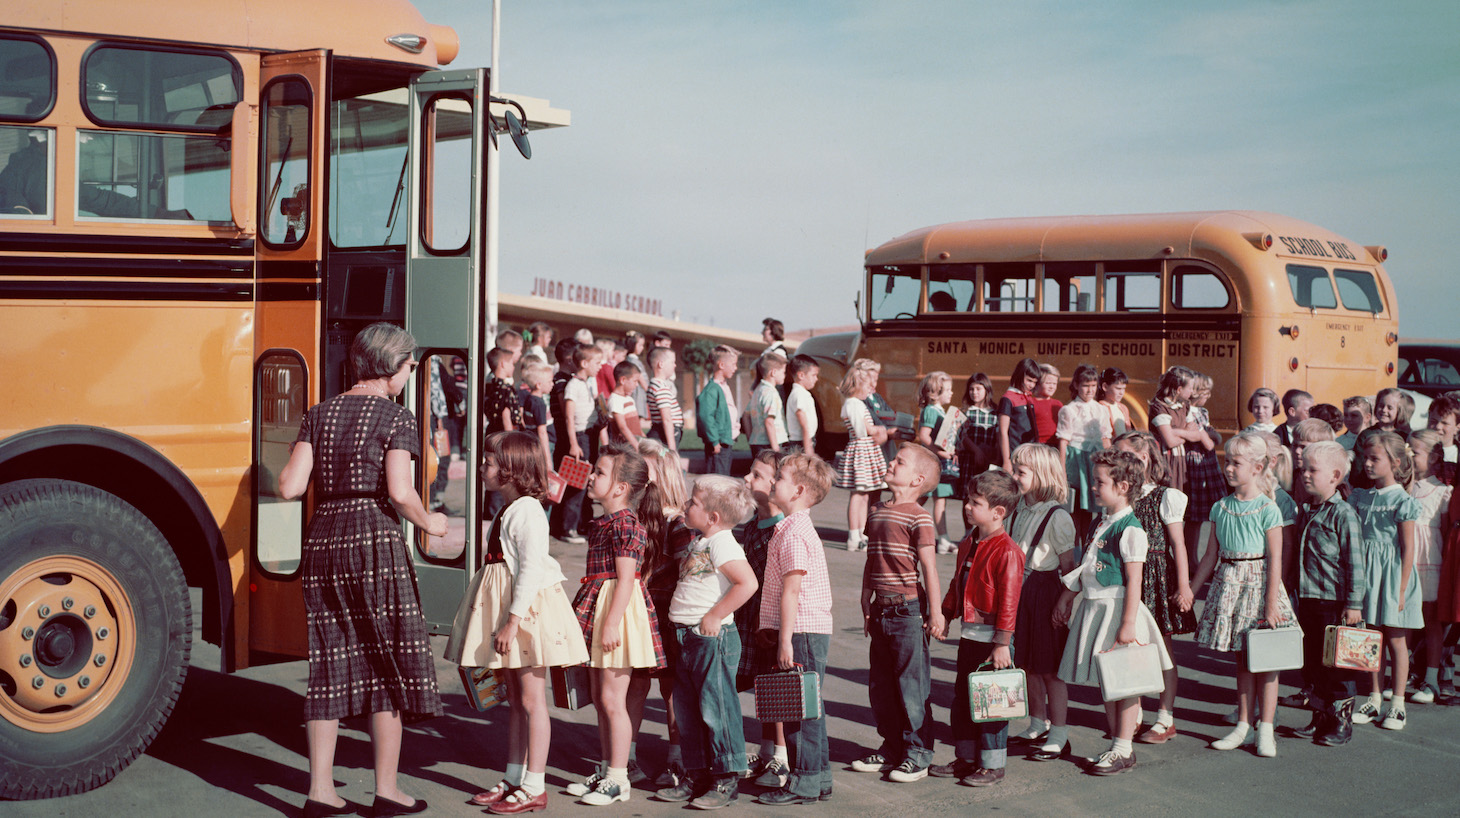 Schoolchilden queueing in pairs to get on the school bus, circa 1960. (Photo by L. Willinger/FPG/Hulton Archive/Getty Images)